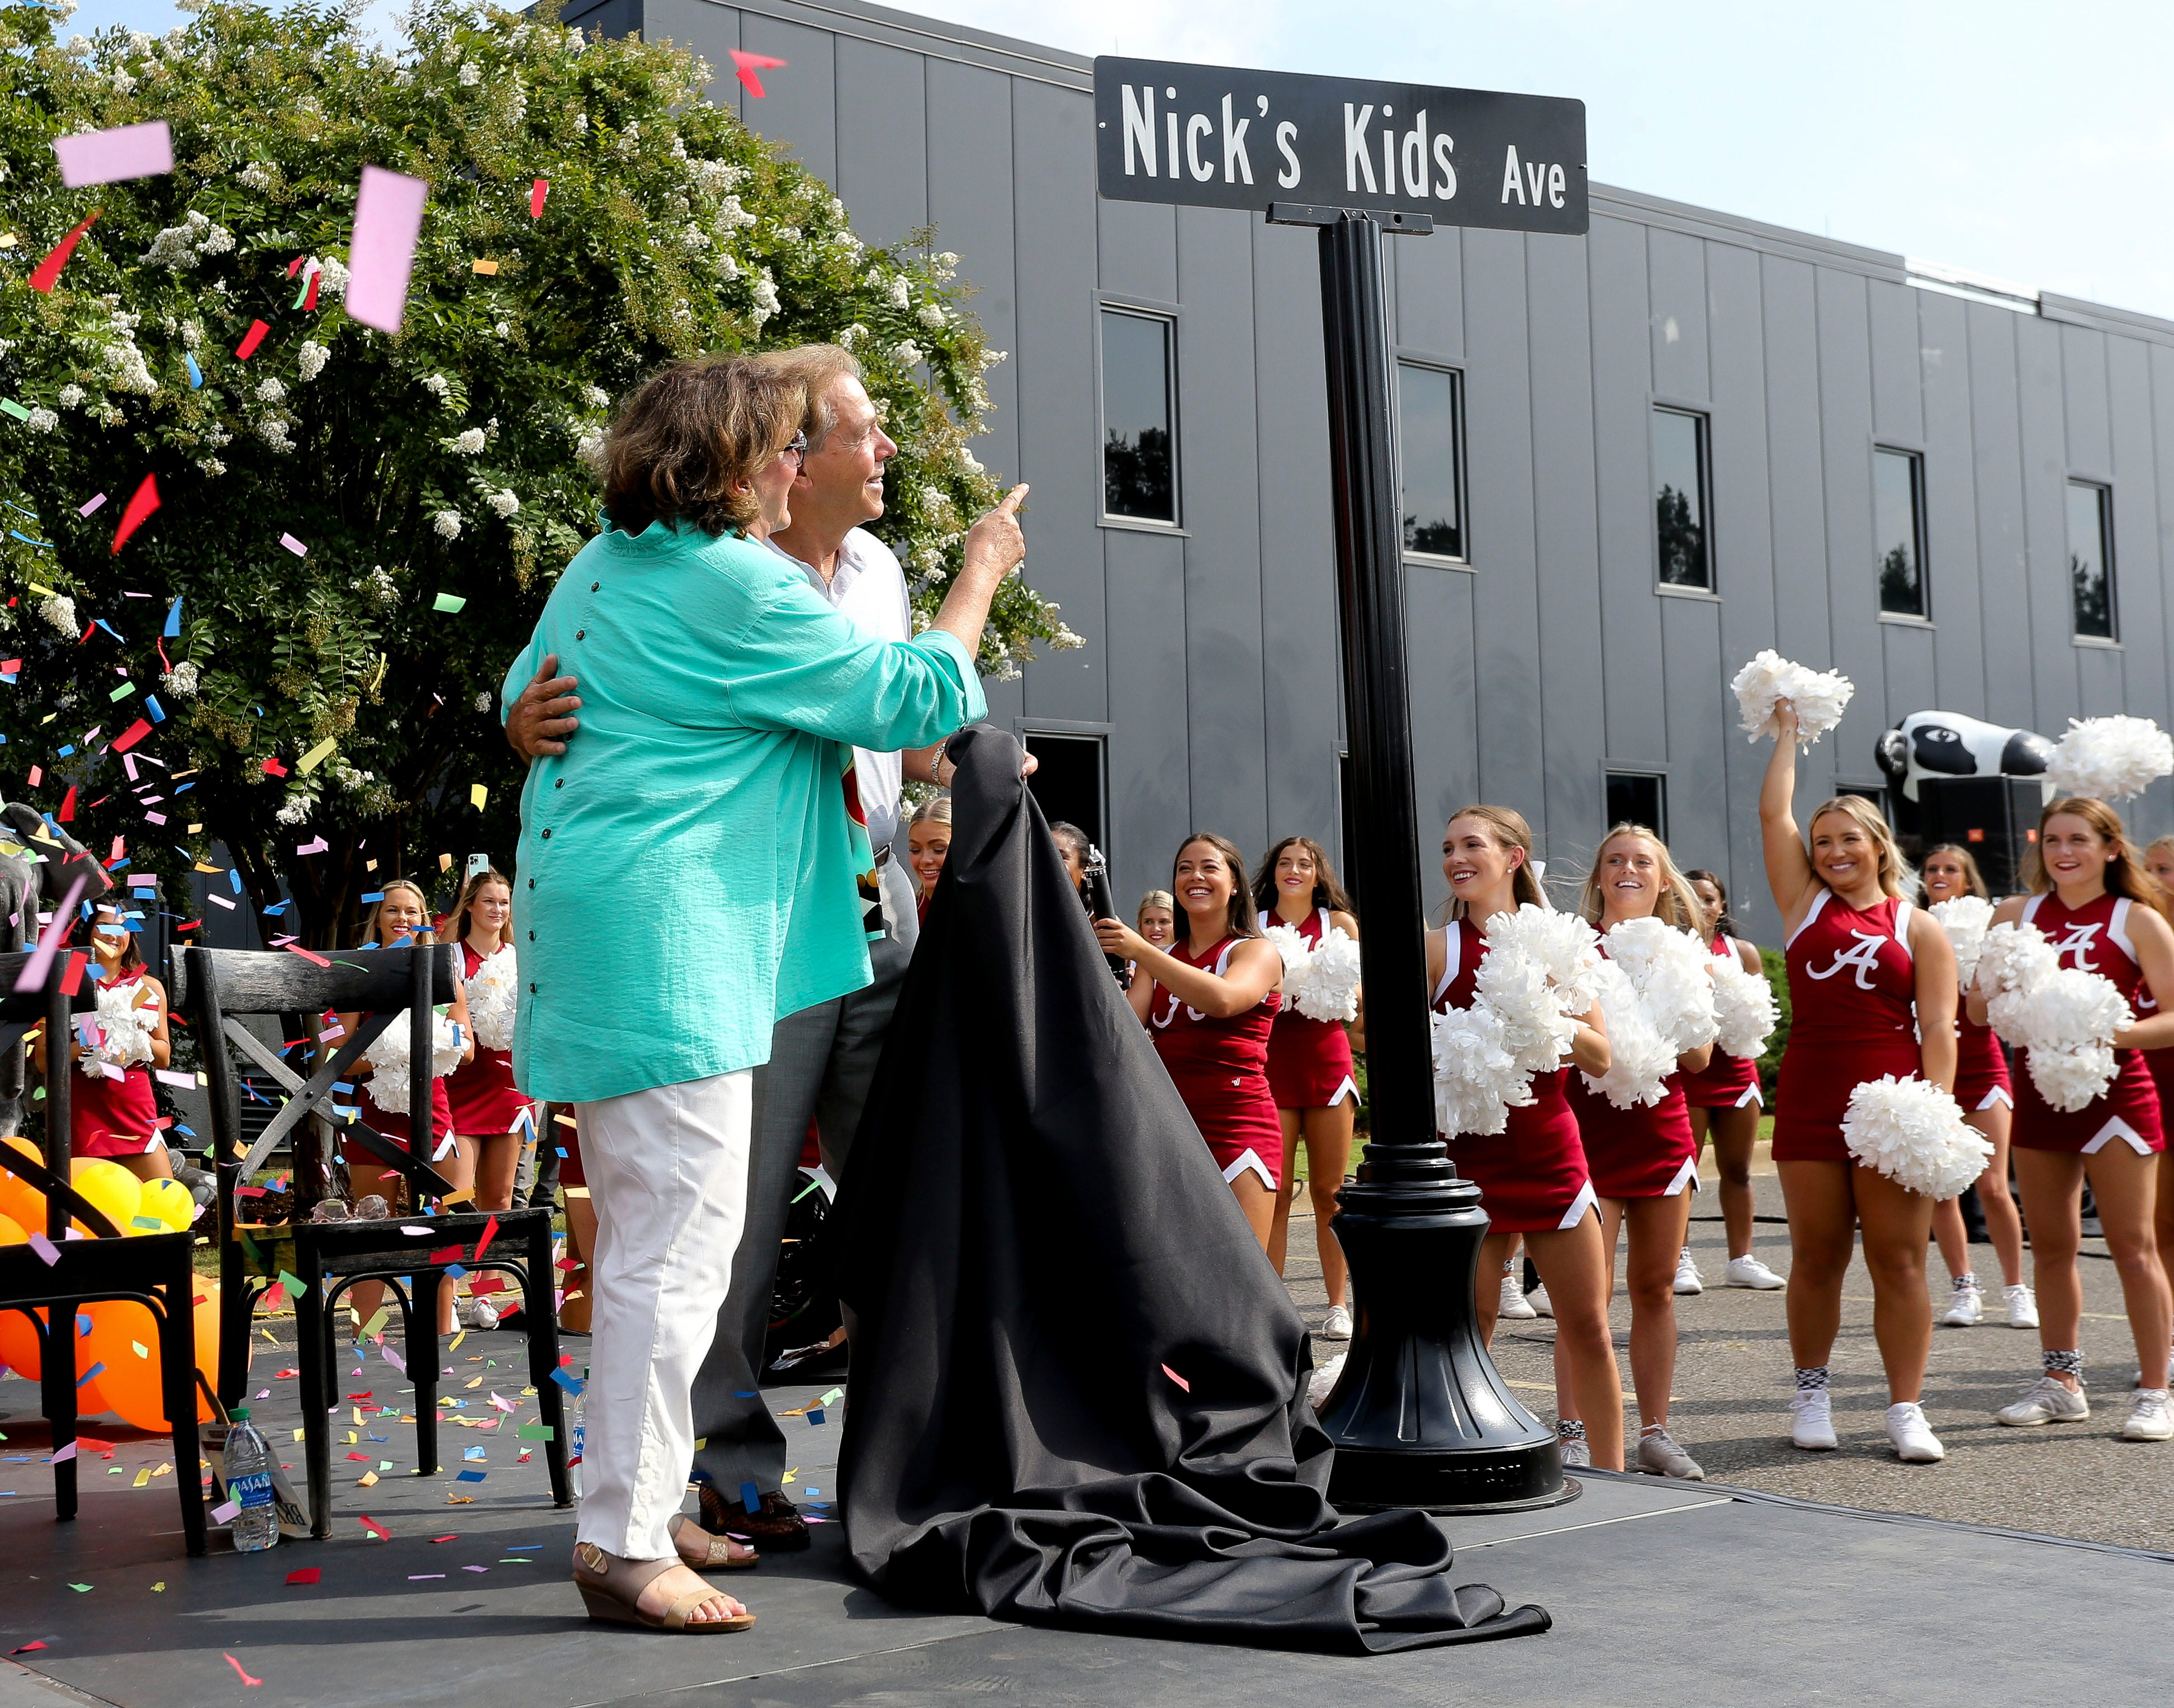 The City of Tuscaloosa renamed 28th Avenue as Nick's Kids Avenue Thursday, Aug. 5, 2021. Terry and Nick Saban enjoy the moment after they have unveiled the street sign. [Staff Photo/Gary Cosby Jr.]